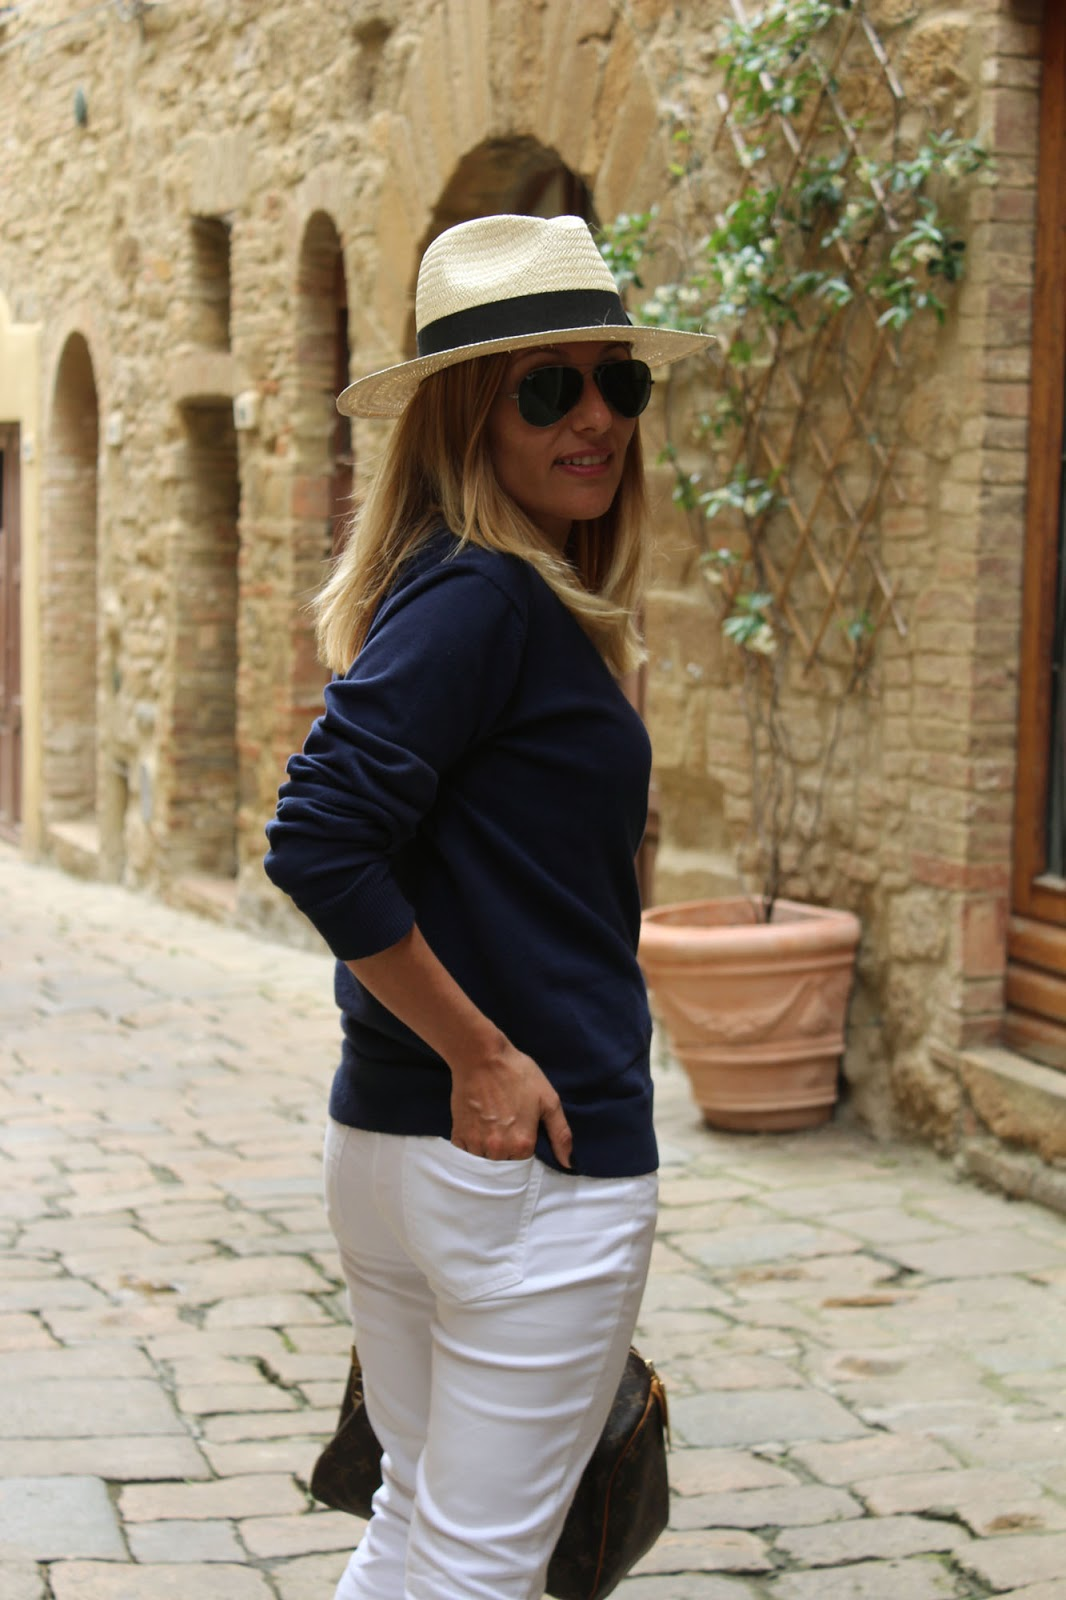 Eniwhere Fashion - Volterra - Blue and white outfit